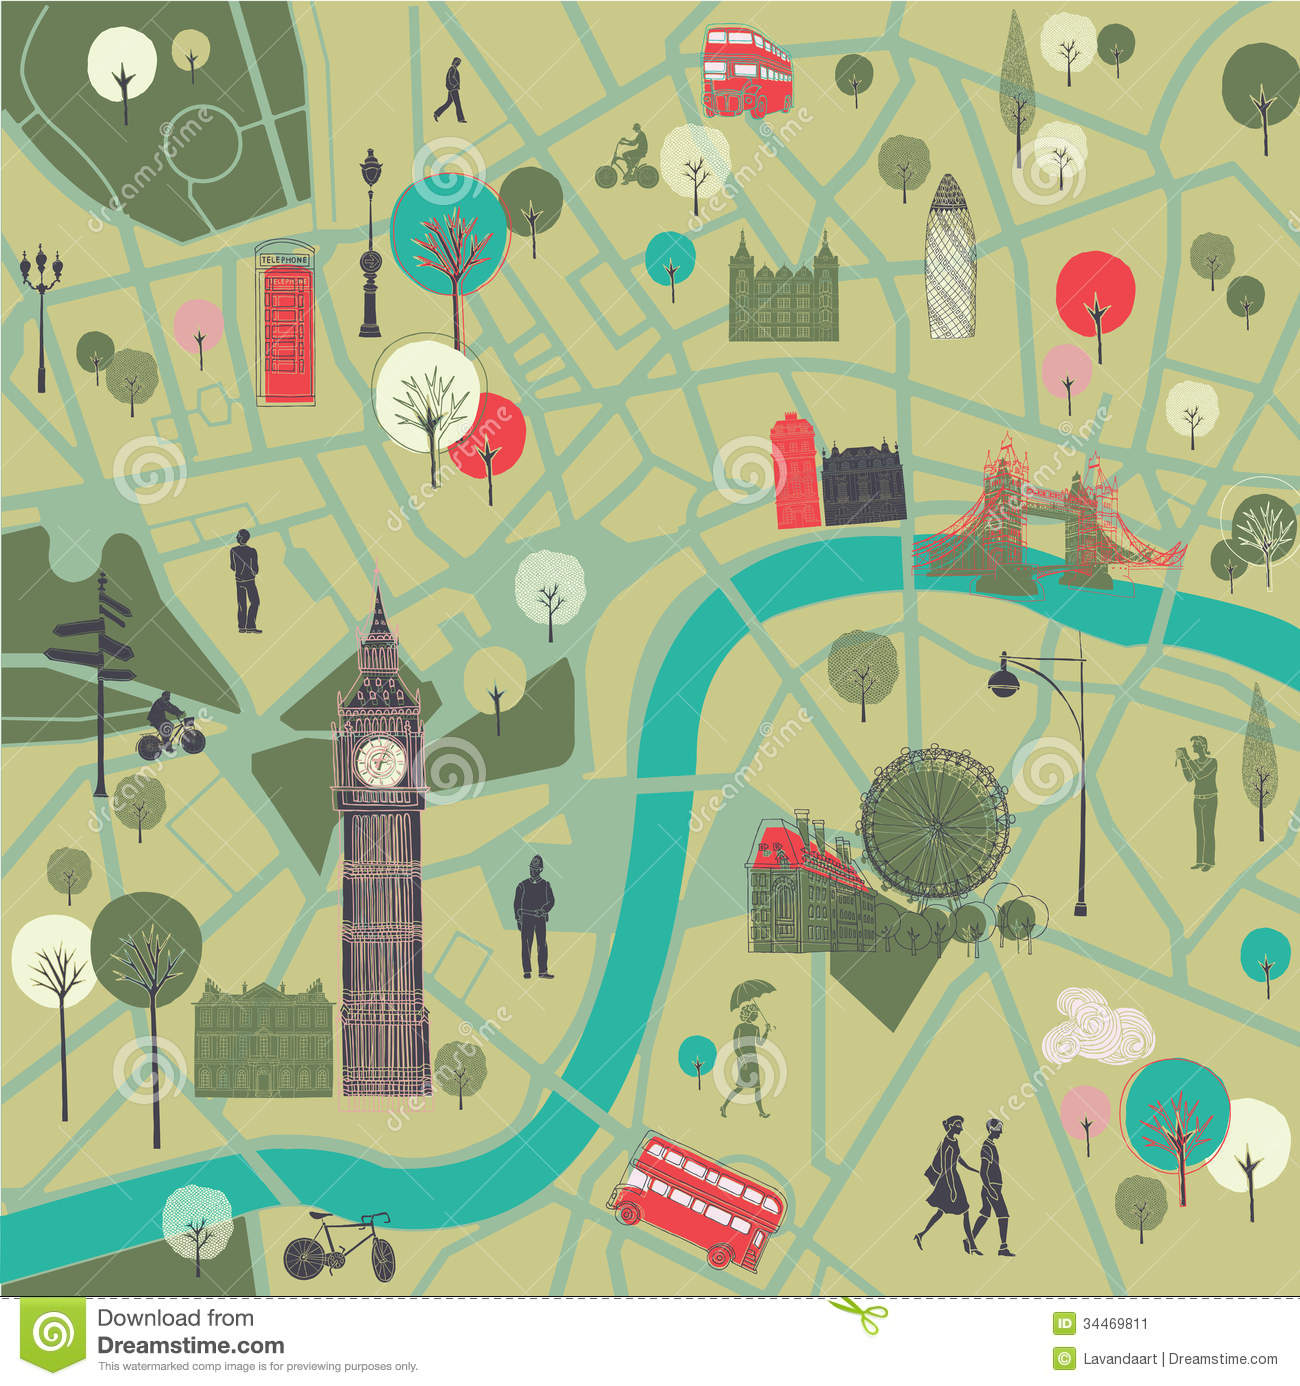 London Landmarks Map.Map Of London With Landmarks Stock Illustration Illustration Of